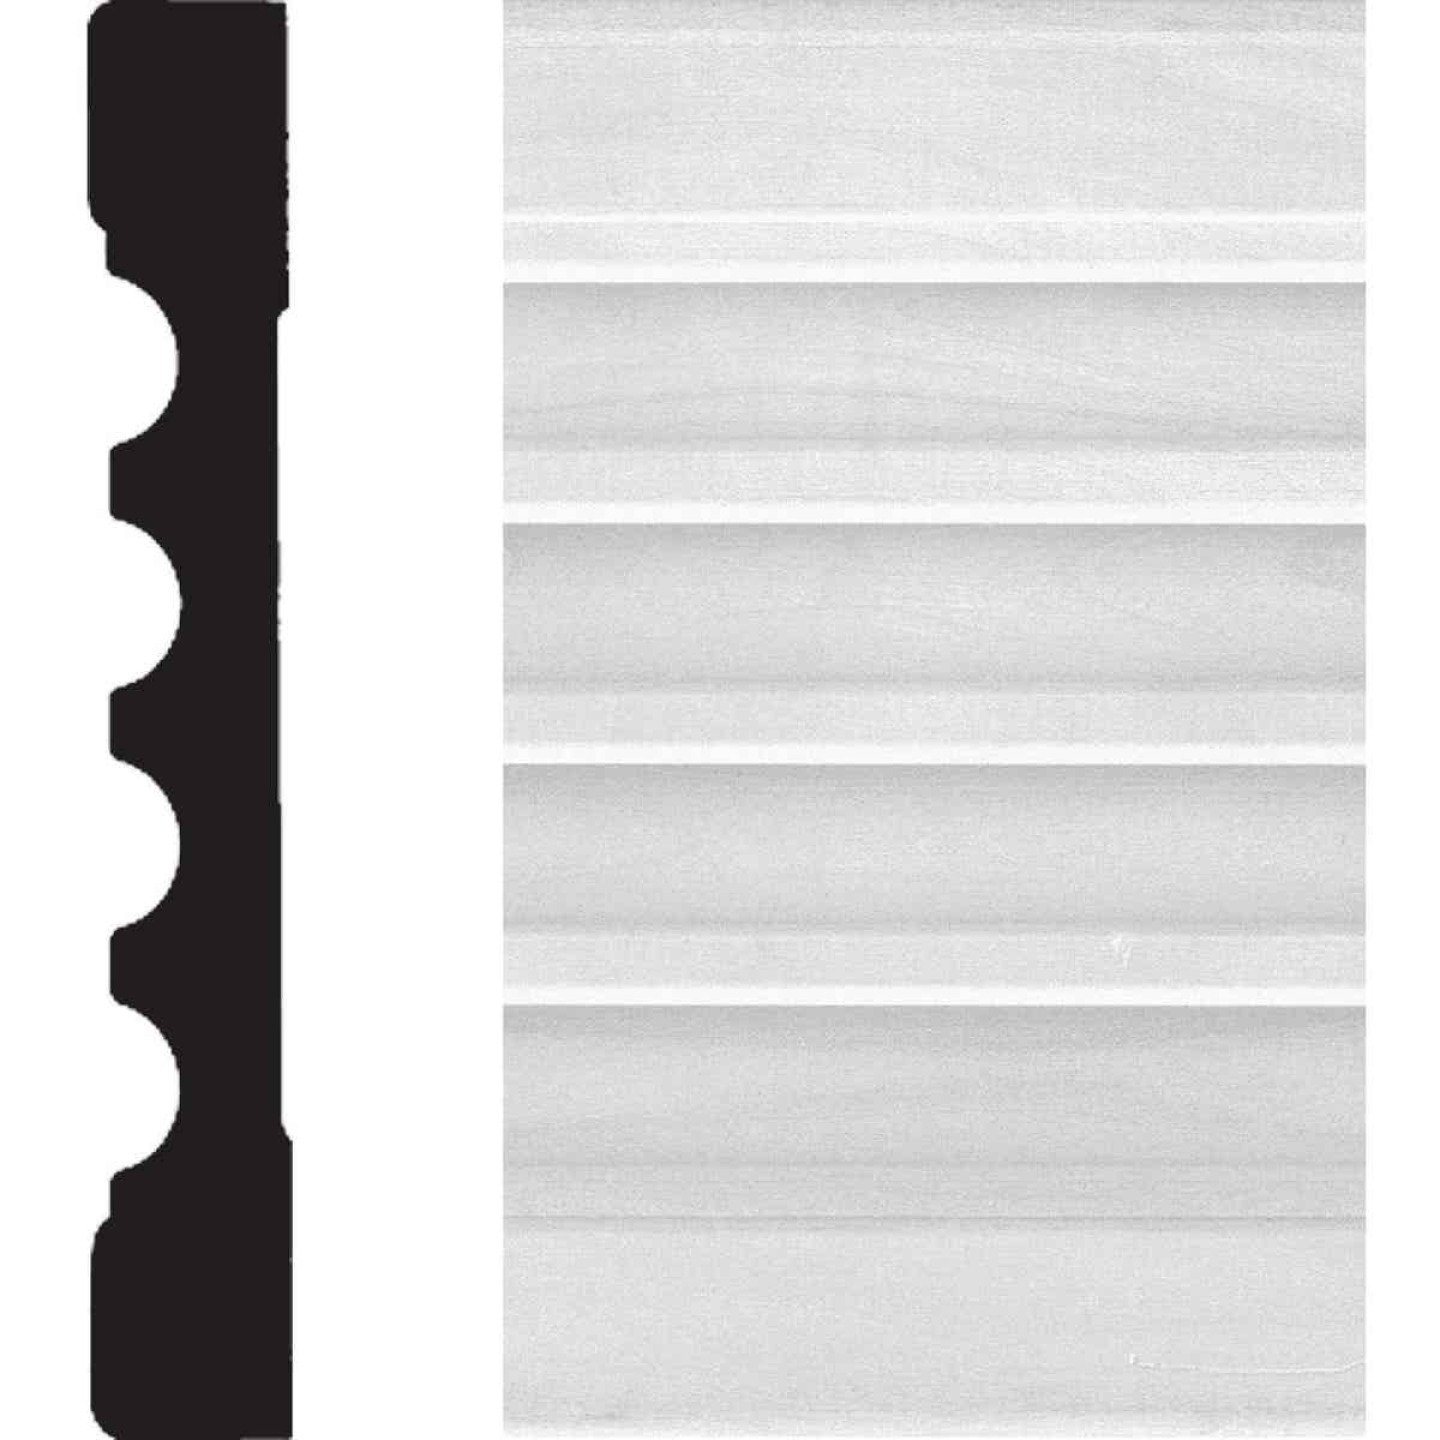 House of Fara 3/4 In. W. x 5-1/4 In. H. x 8 Ft. L. White MDF Fluted Casing Molding Image 1